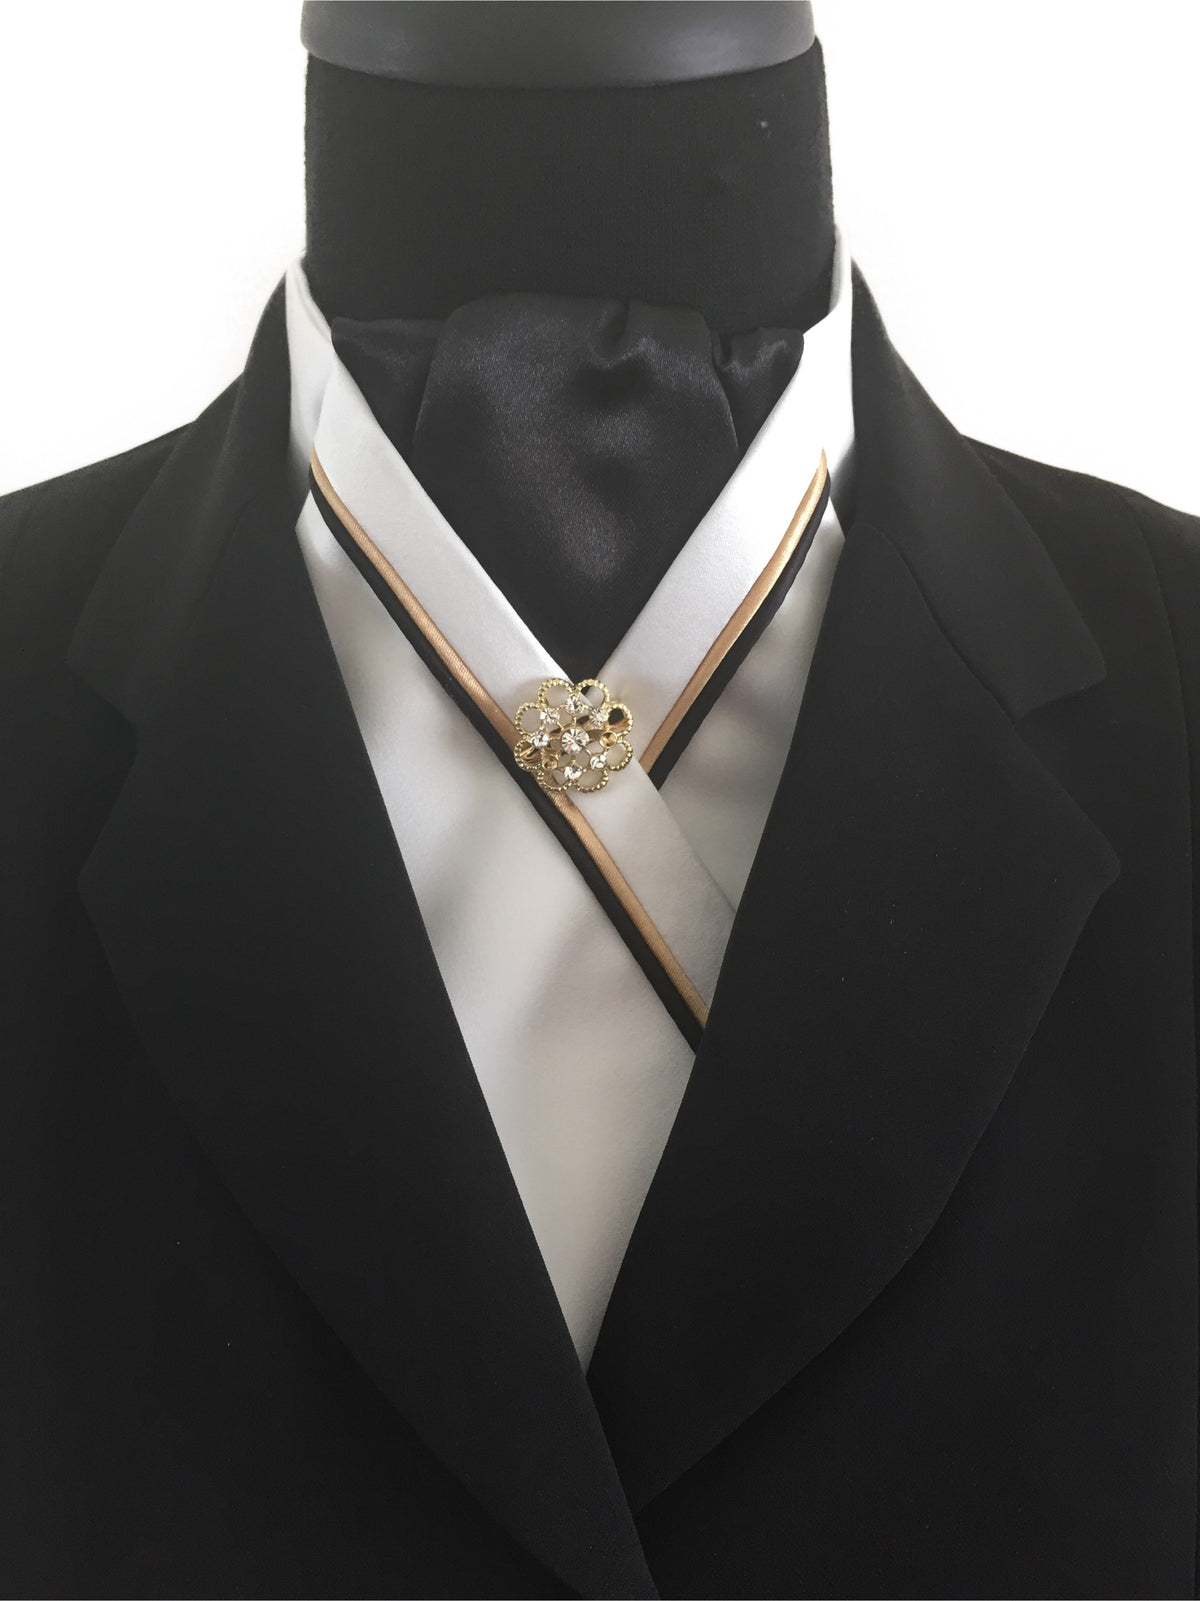 White Stock Tie with Black Center and Black & Gold Piping